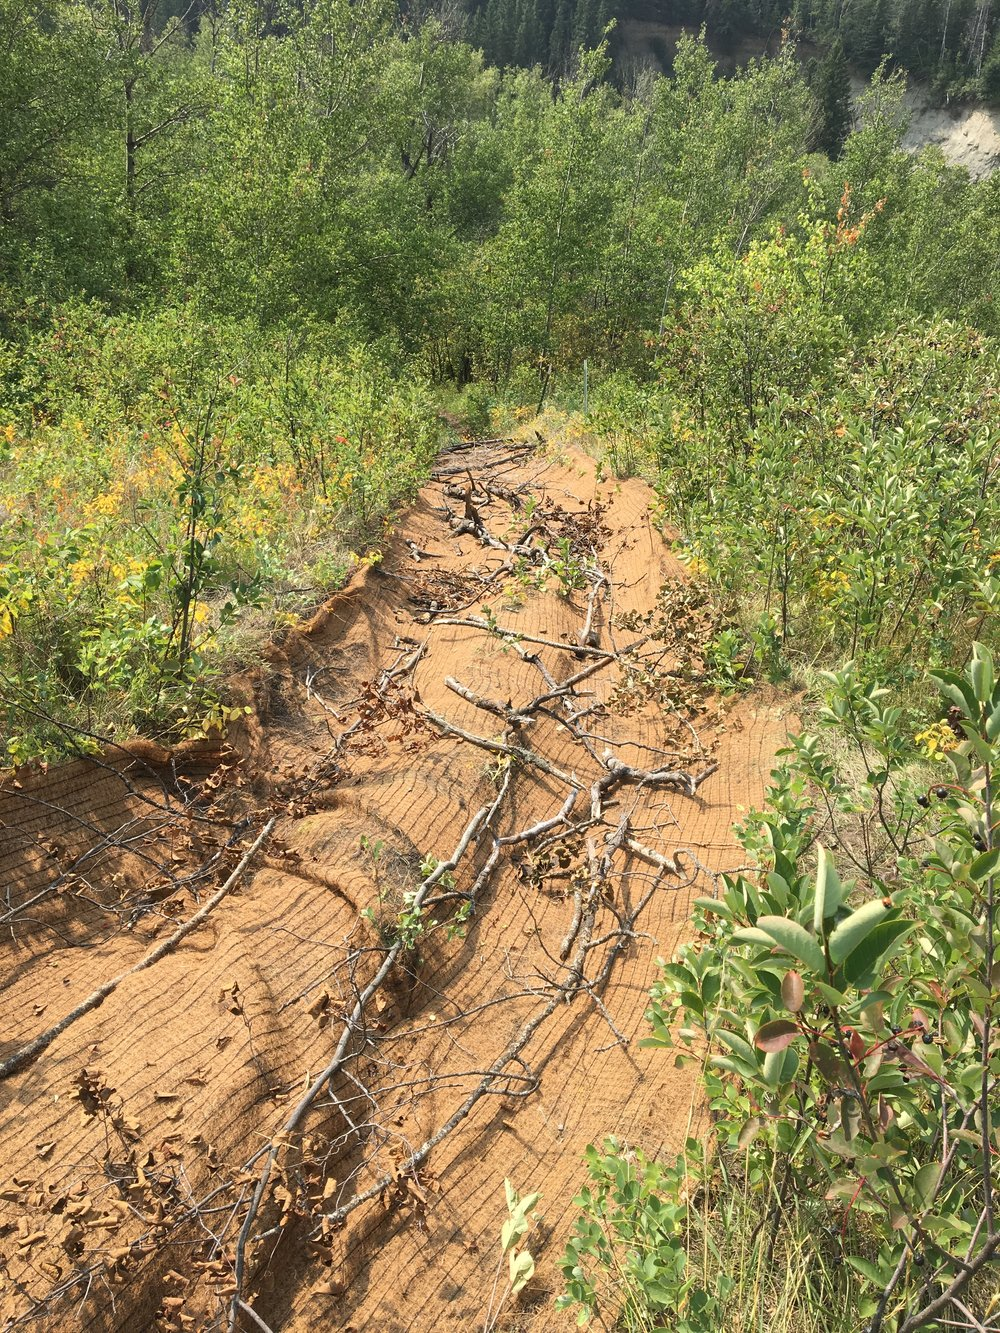 Volunteers restored an old eroded trail at Coates